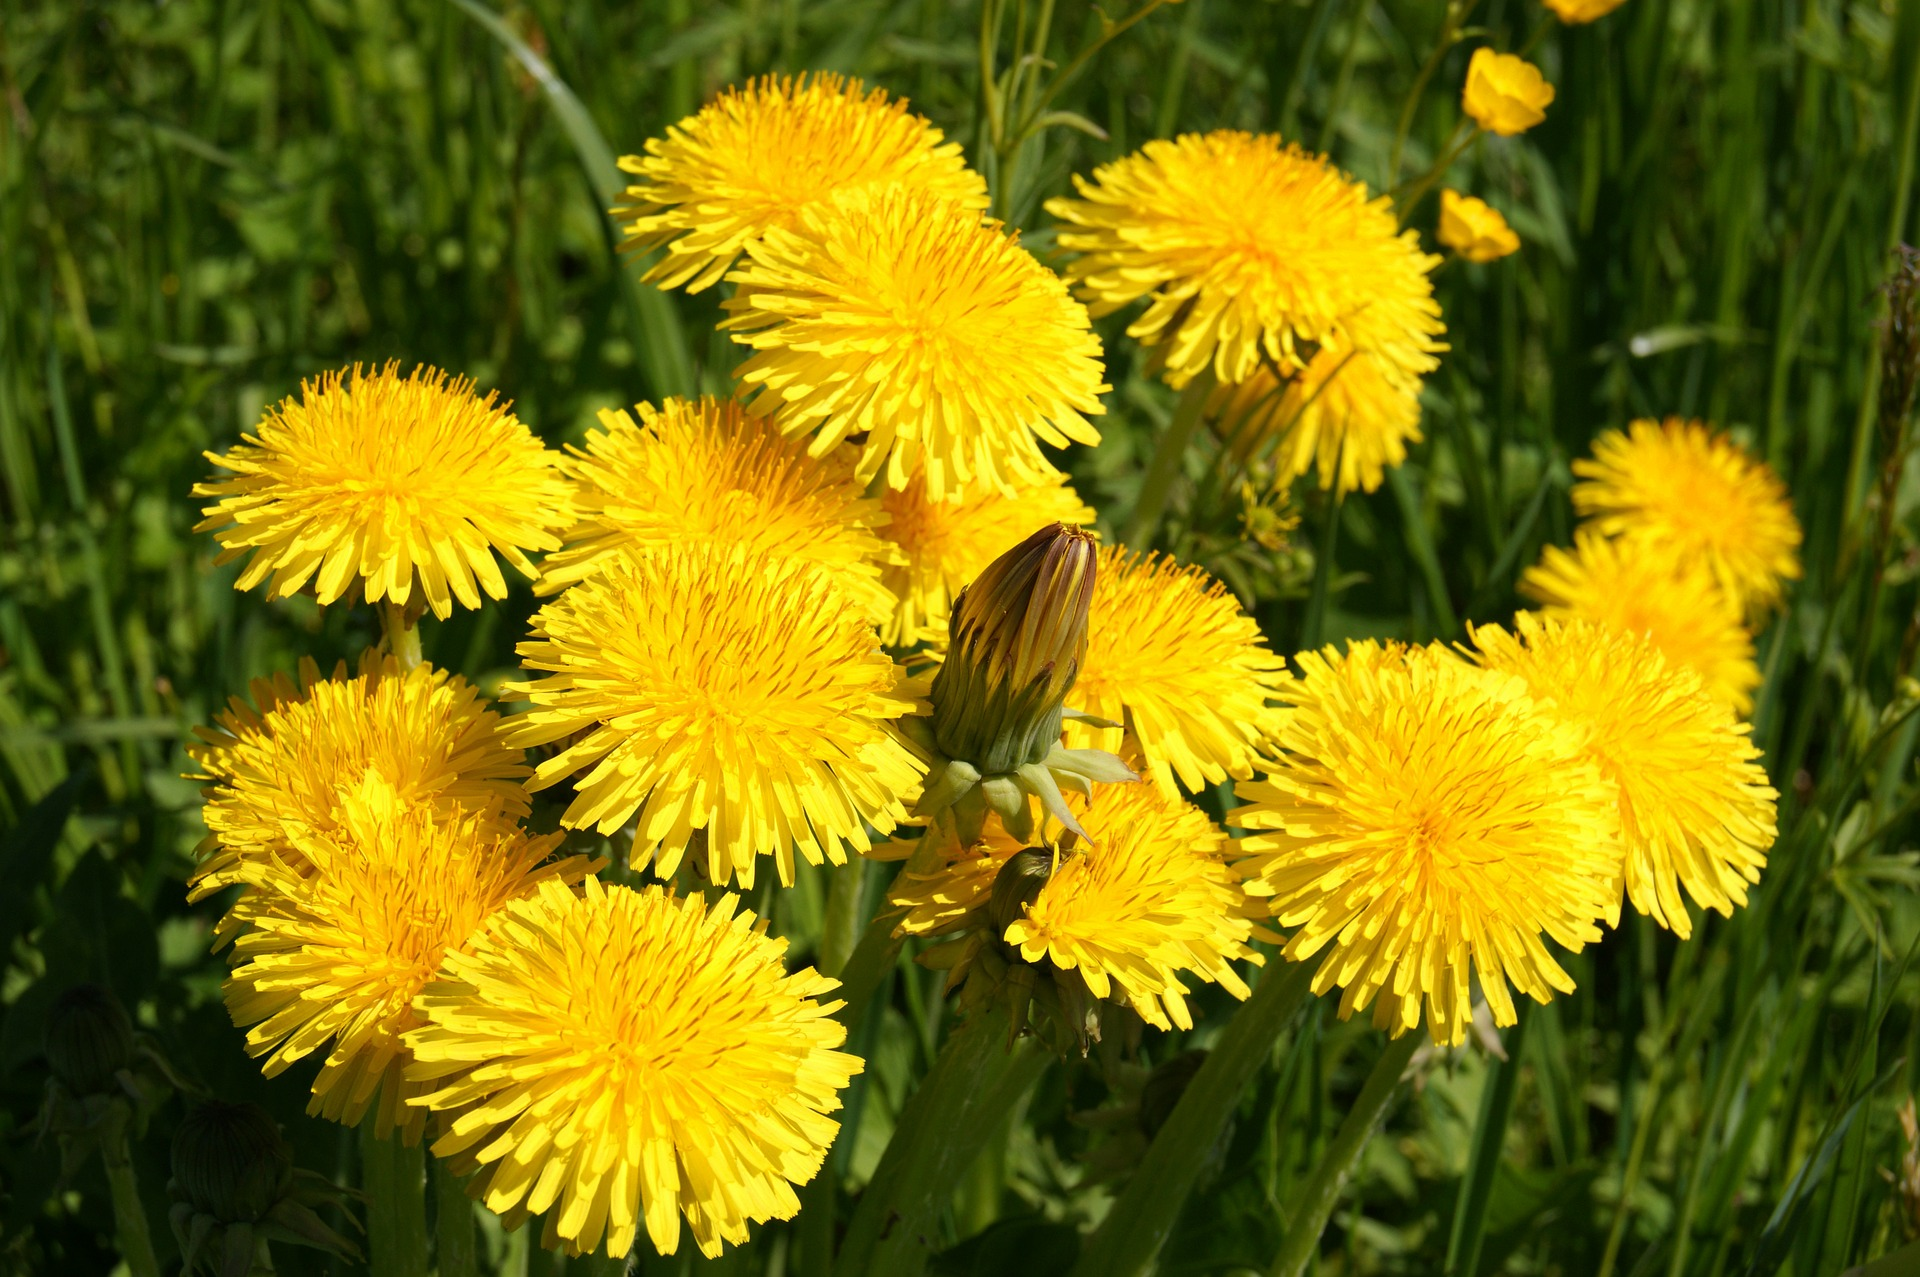 Dandelions smile at the sun.